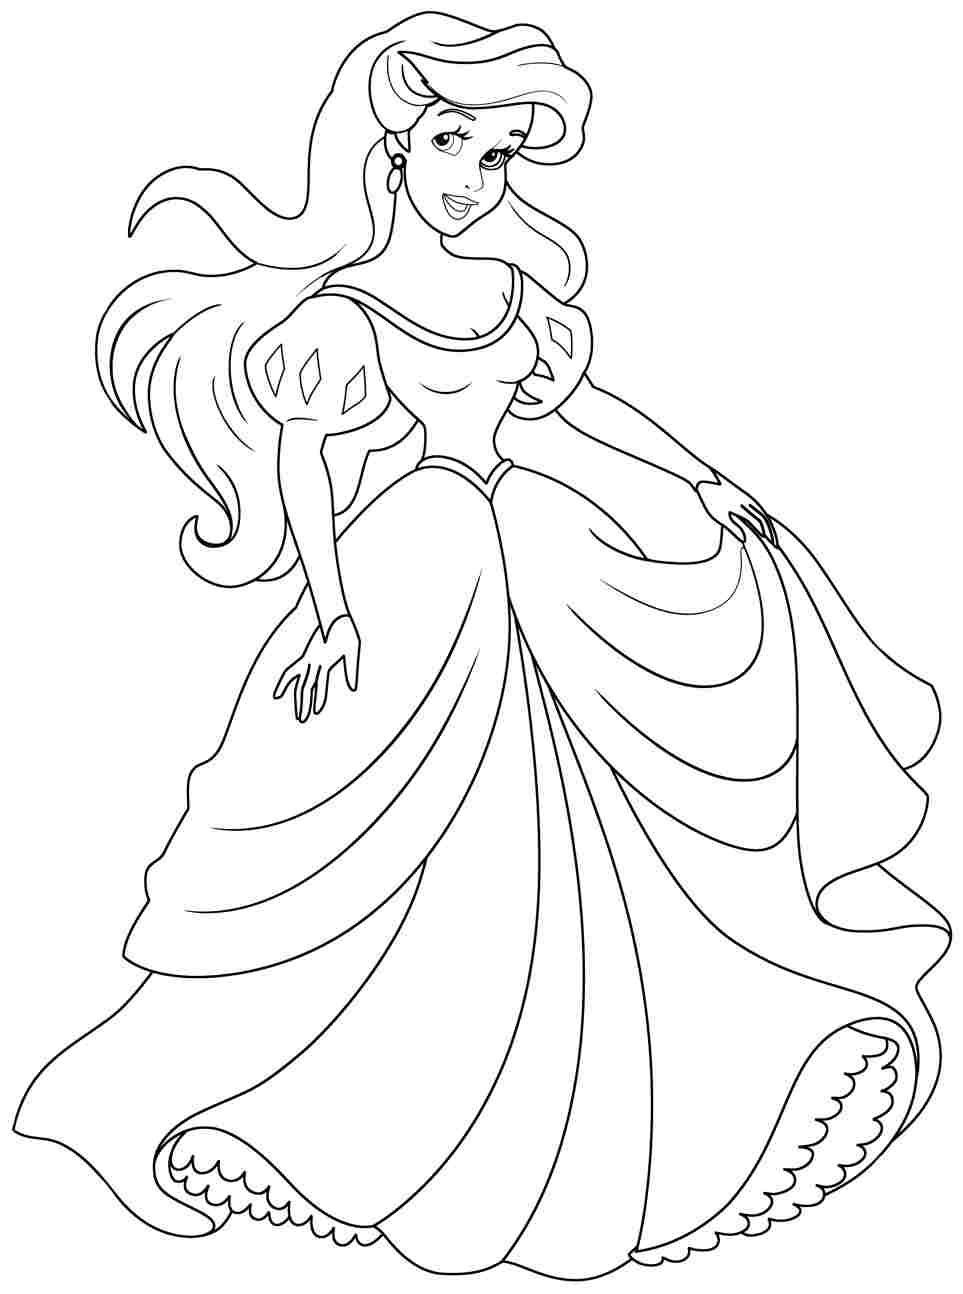 ariel coloring pages to download and print for free